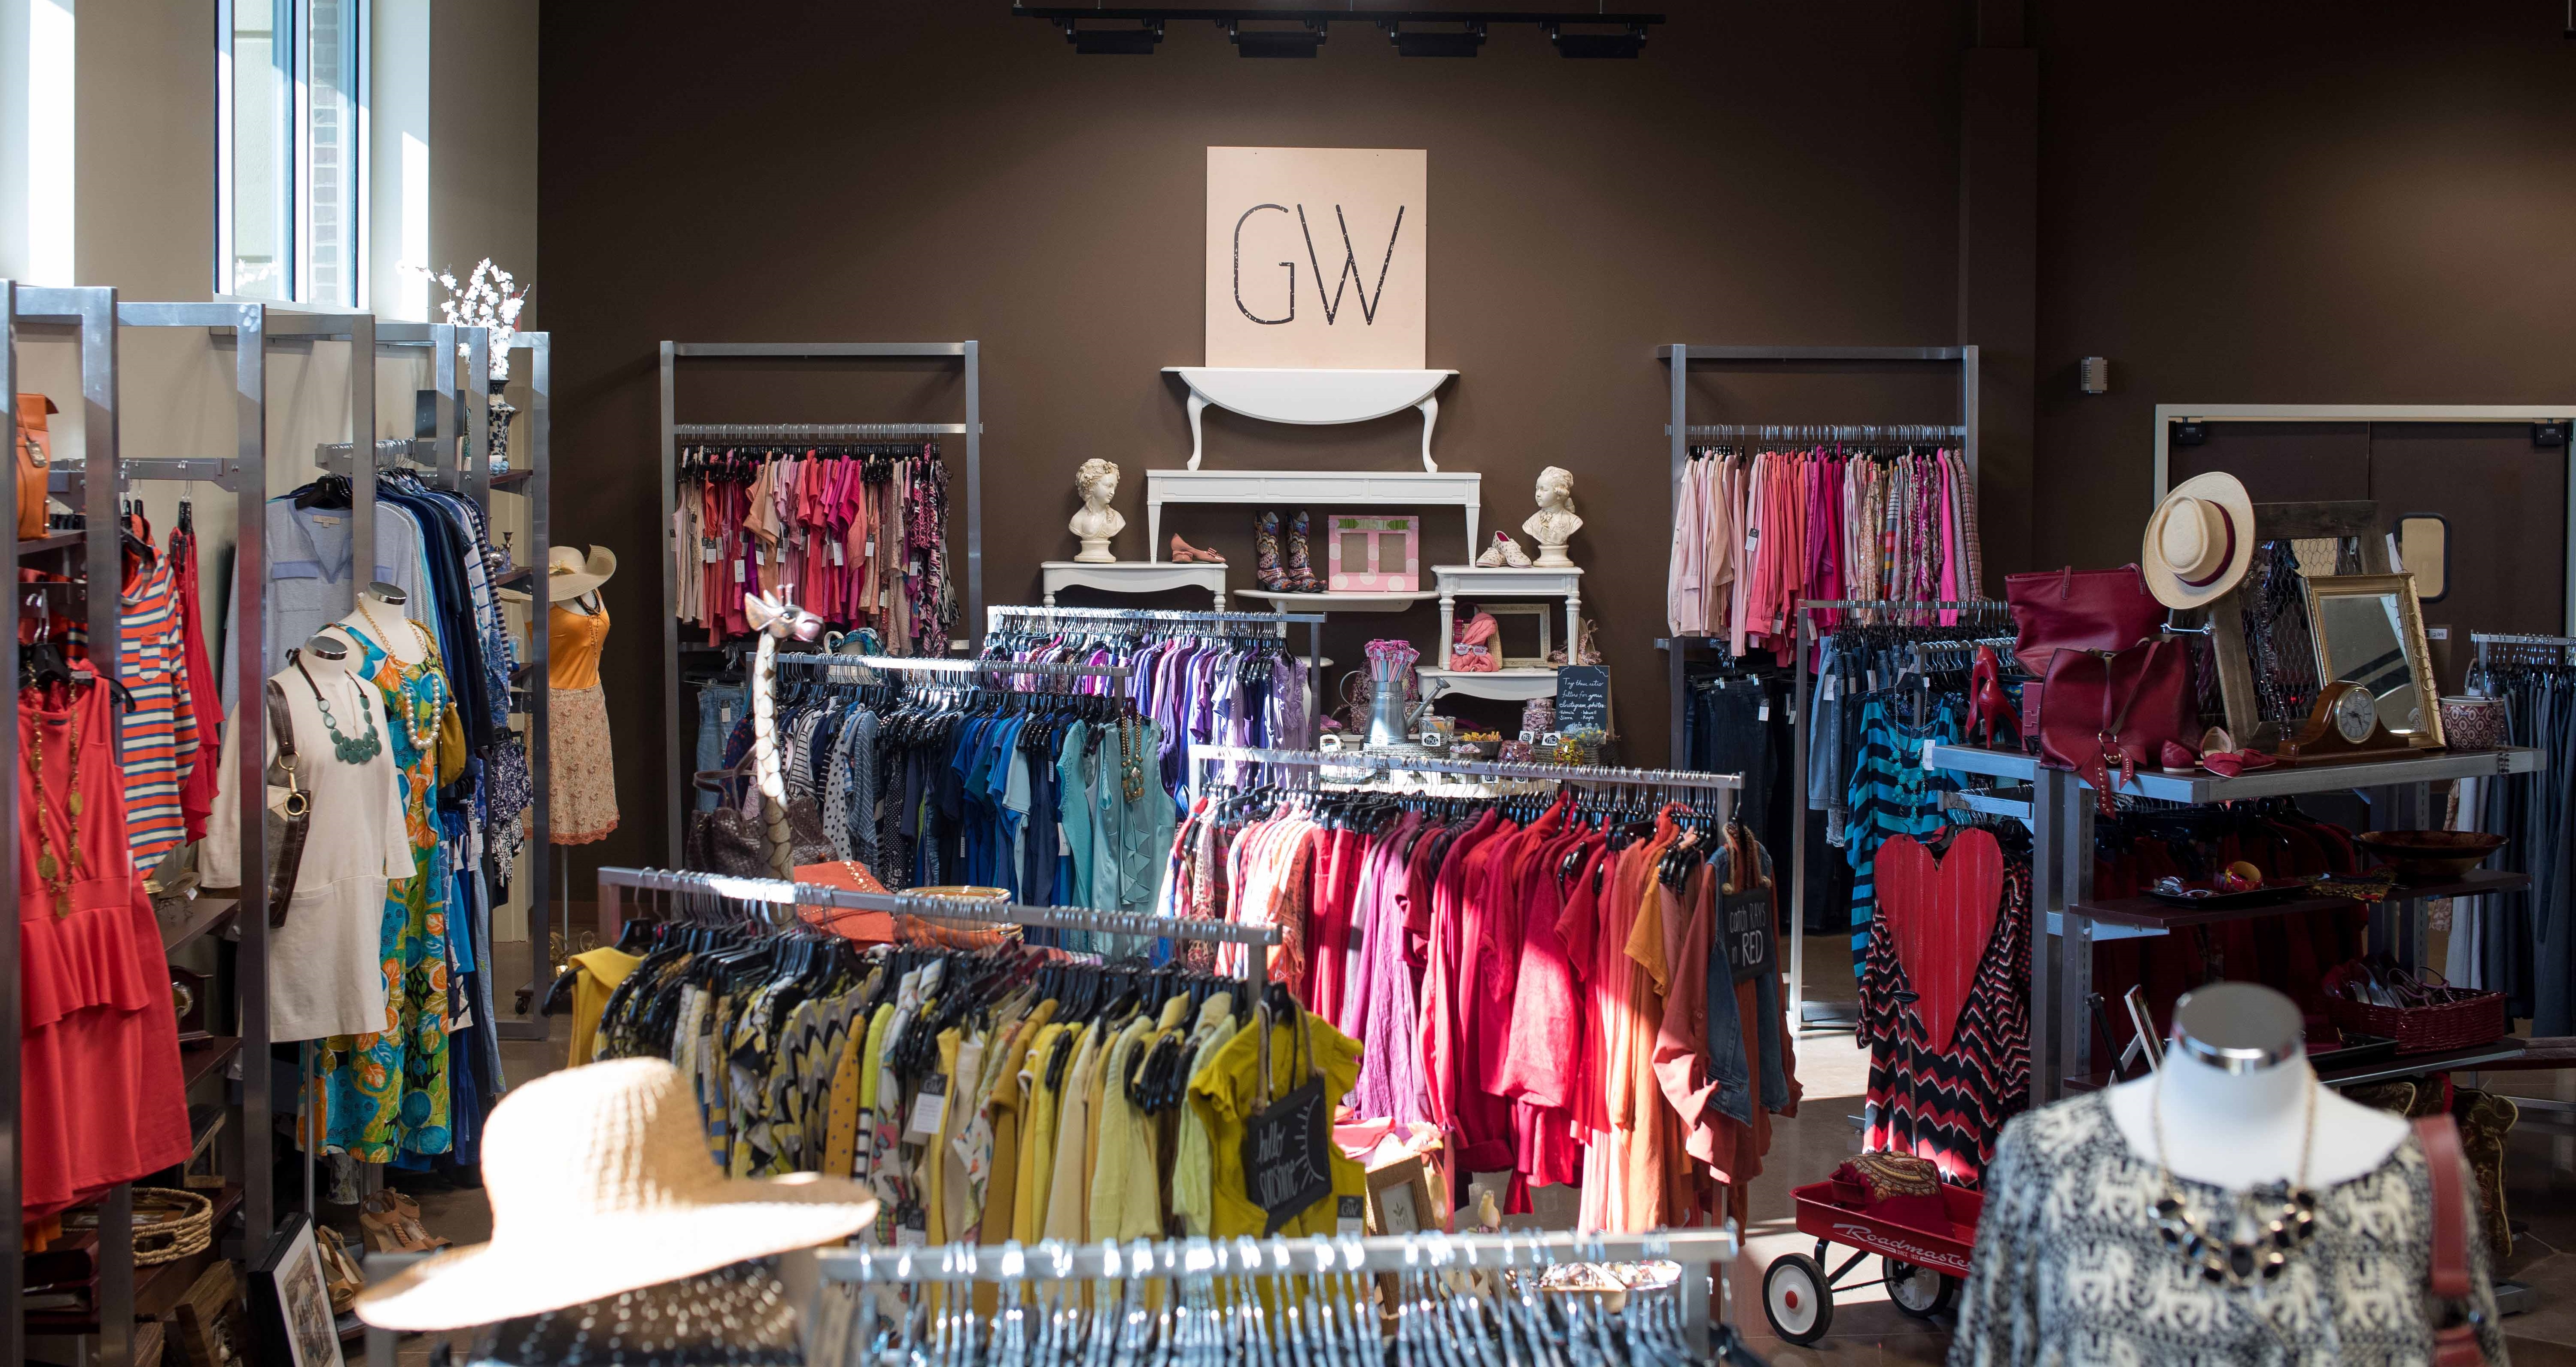 Gw Opens At The Goodwill Opportunity Campus Goodwill Southern